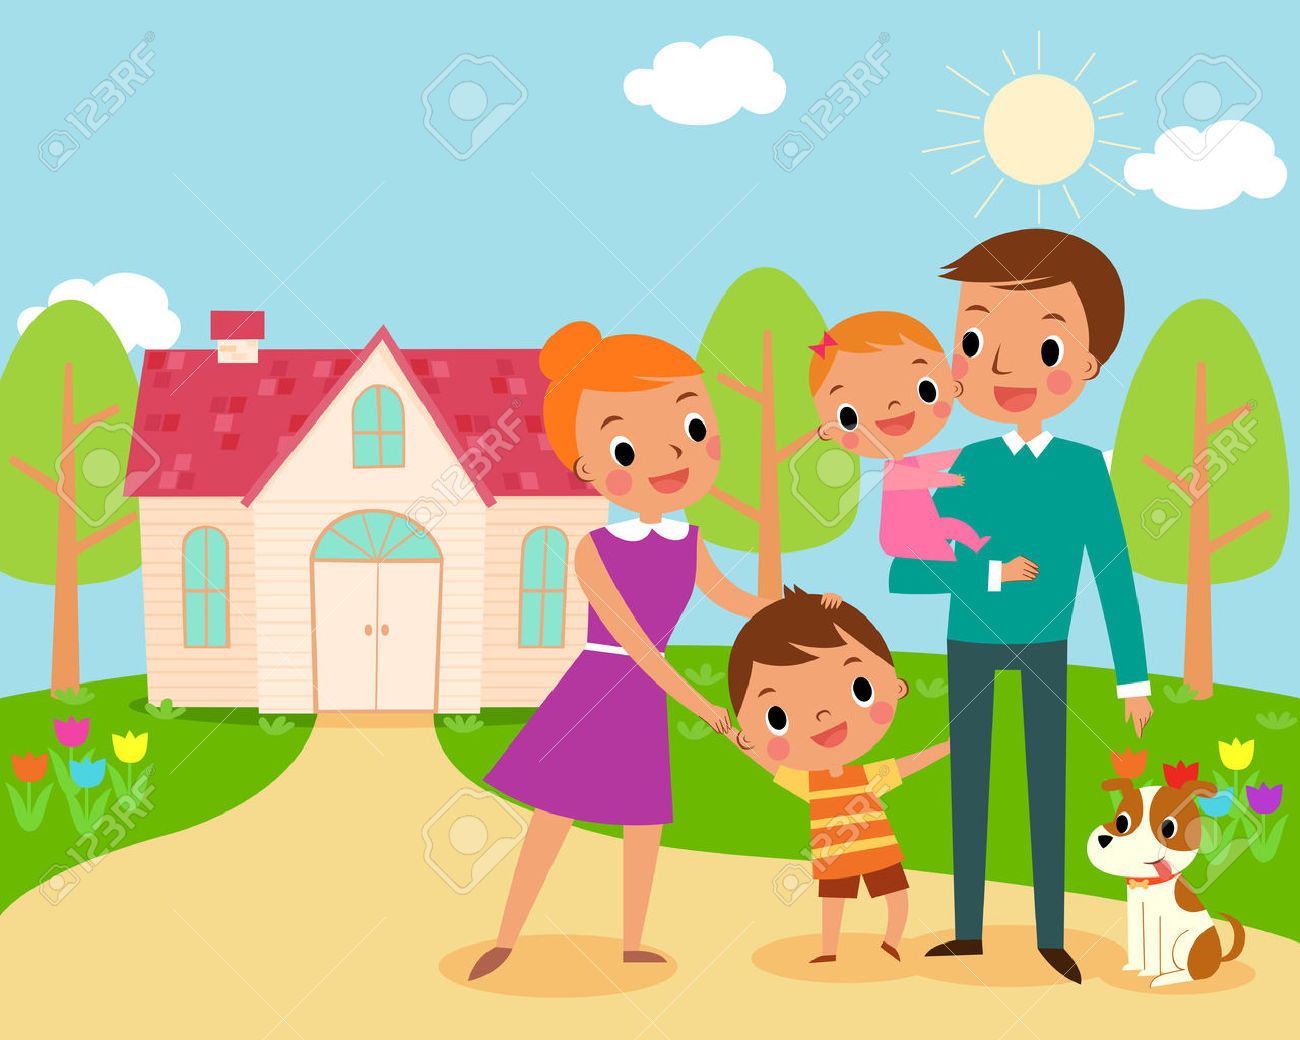 Happy family at home clipart 1 » Clipart Station